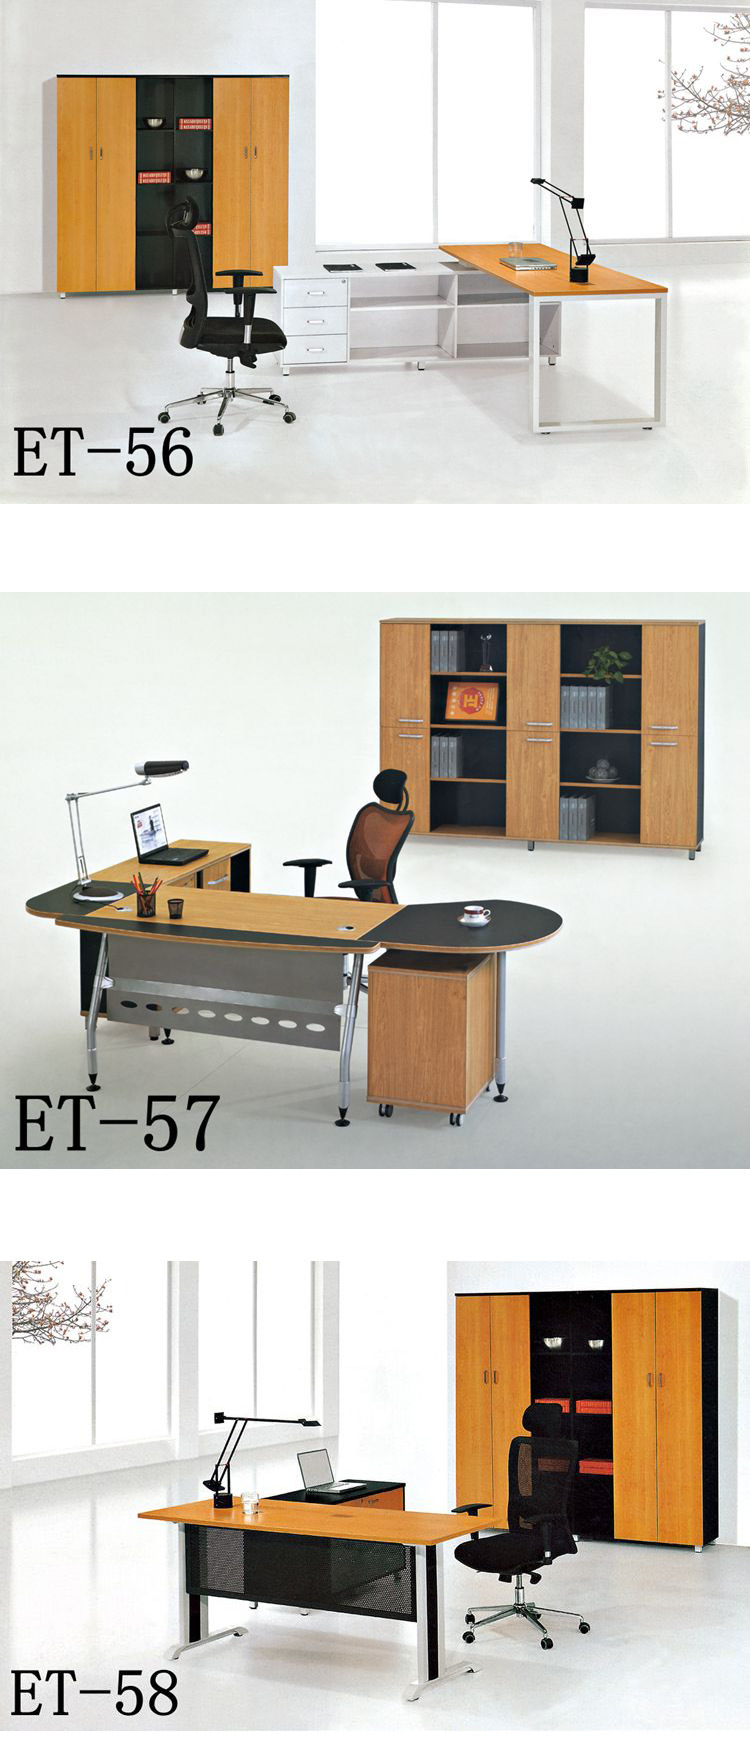 Et-50 Office Desk fashion Modern L Design Boss Manager Office Executive Table